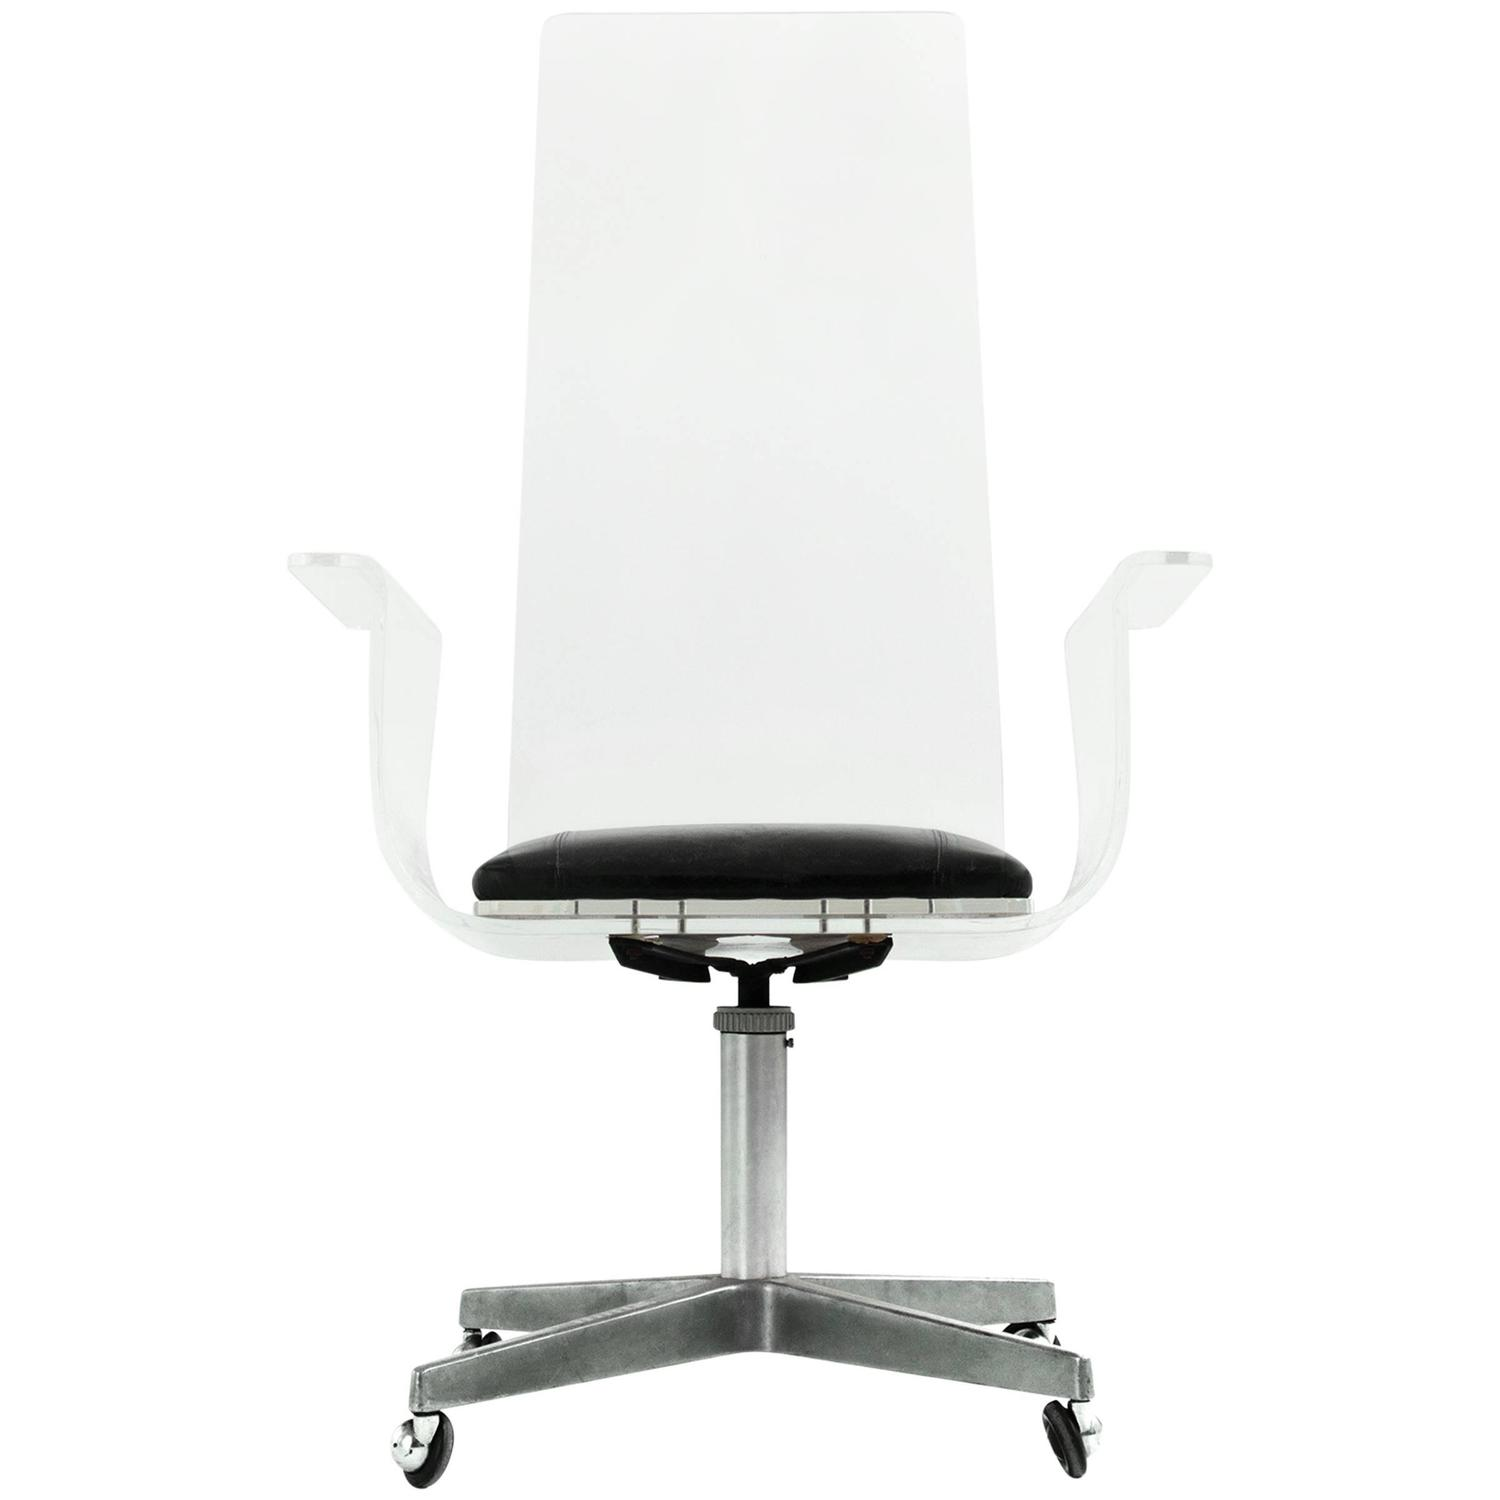 Acrylic Desk Chair Lucite Desk Chair In The Style Of Laverne For Sale At 1stdibs